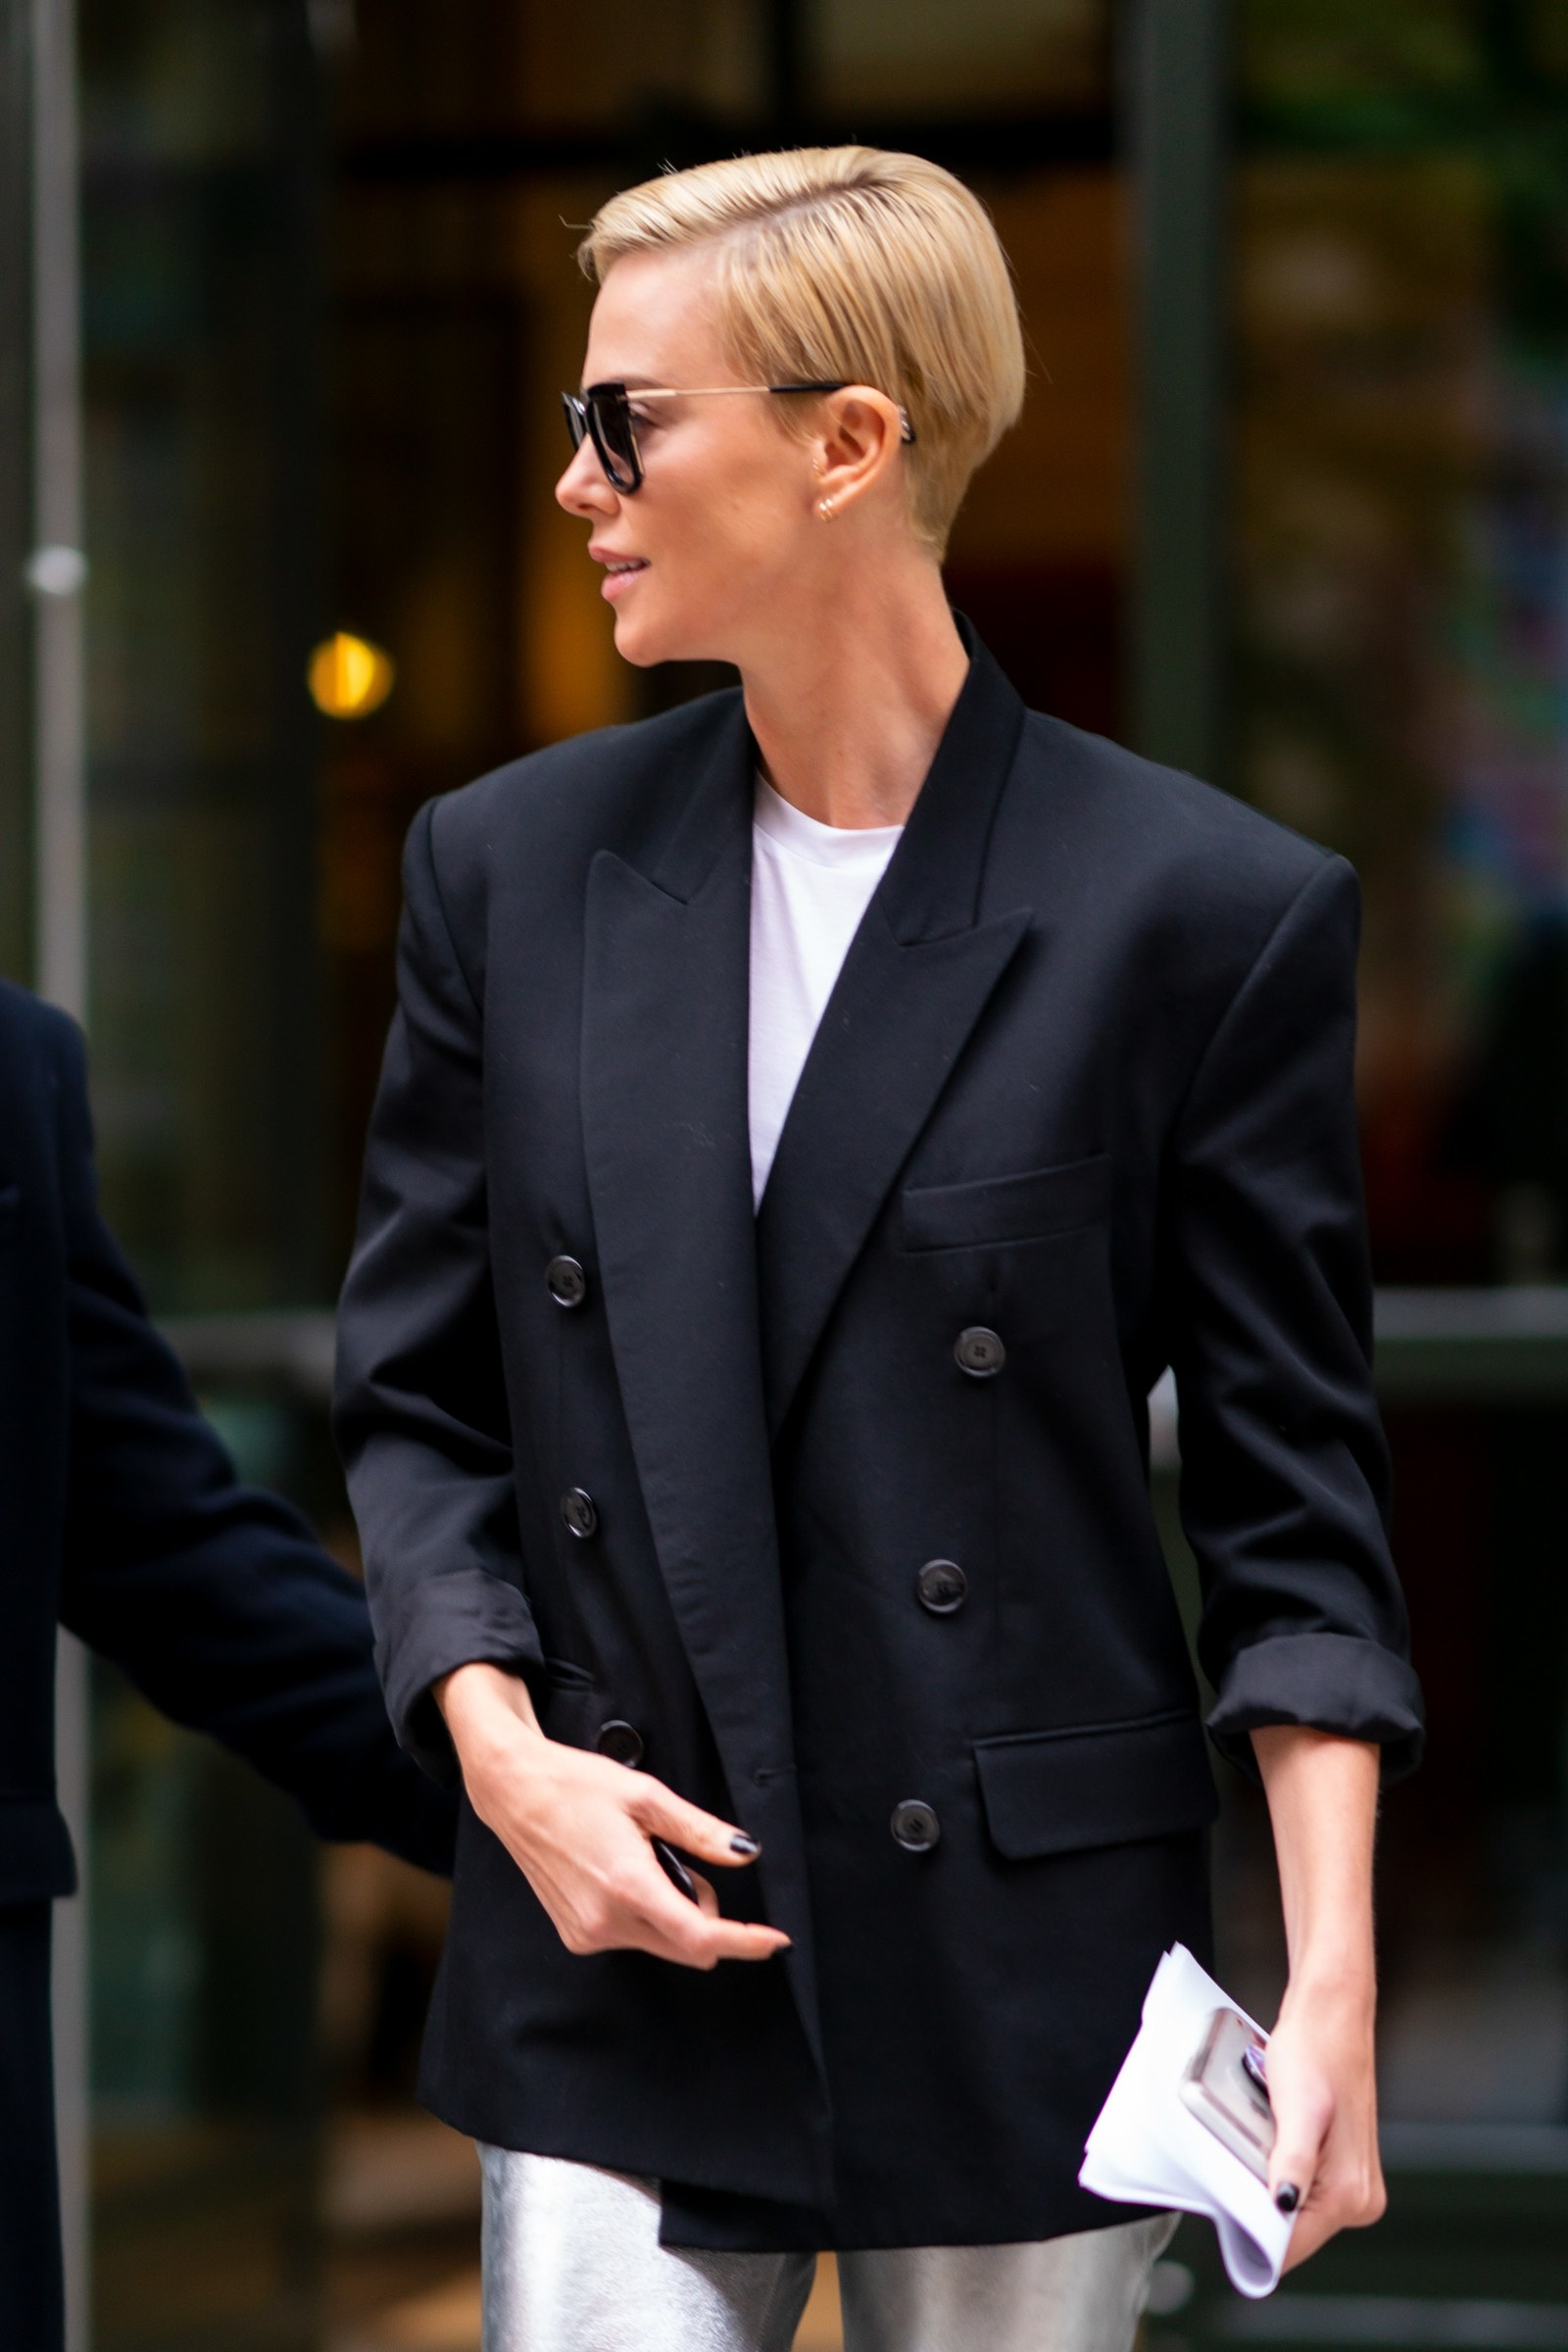 Charlize Theron is seen in SoHo on November 12 2019 in New York City.